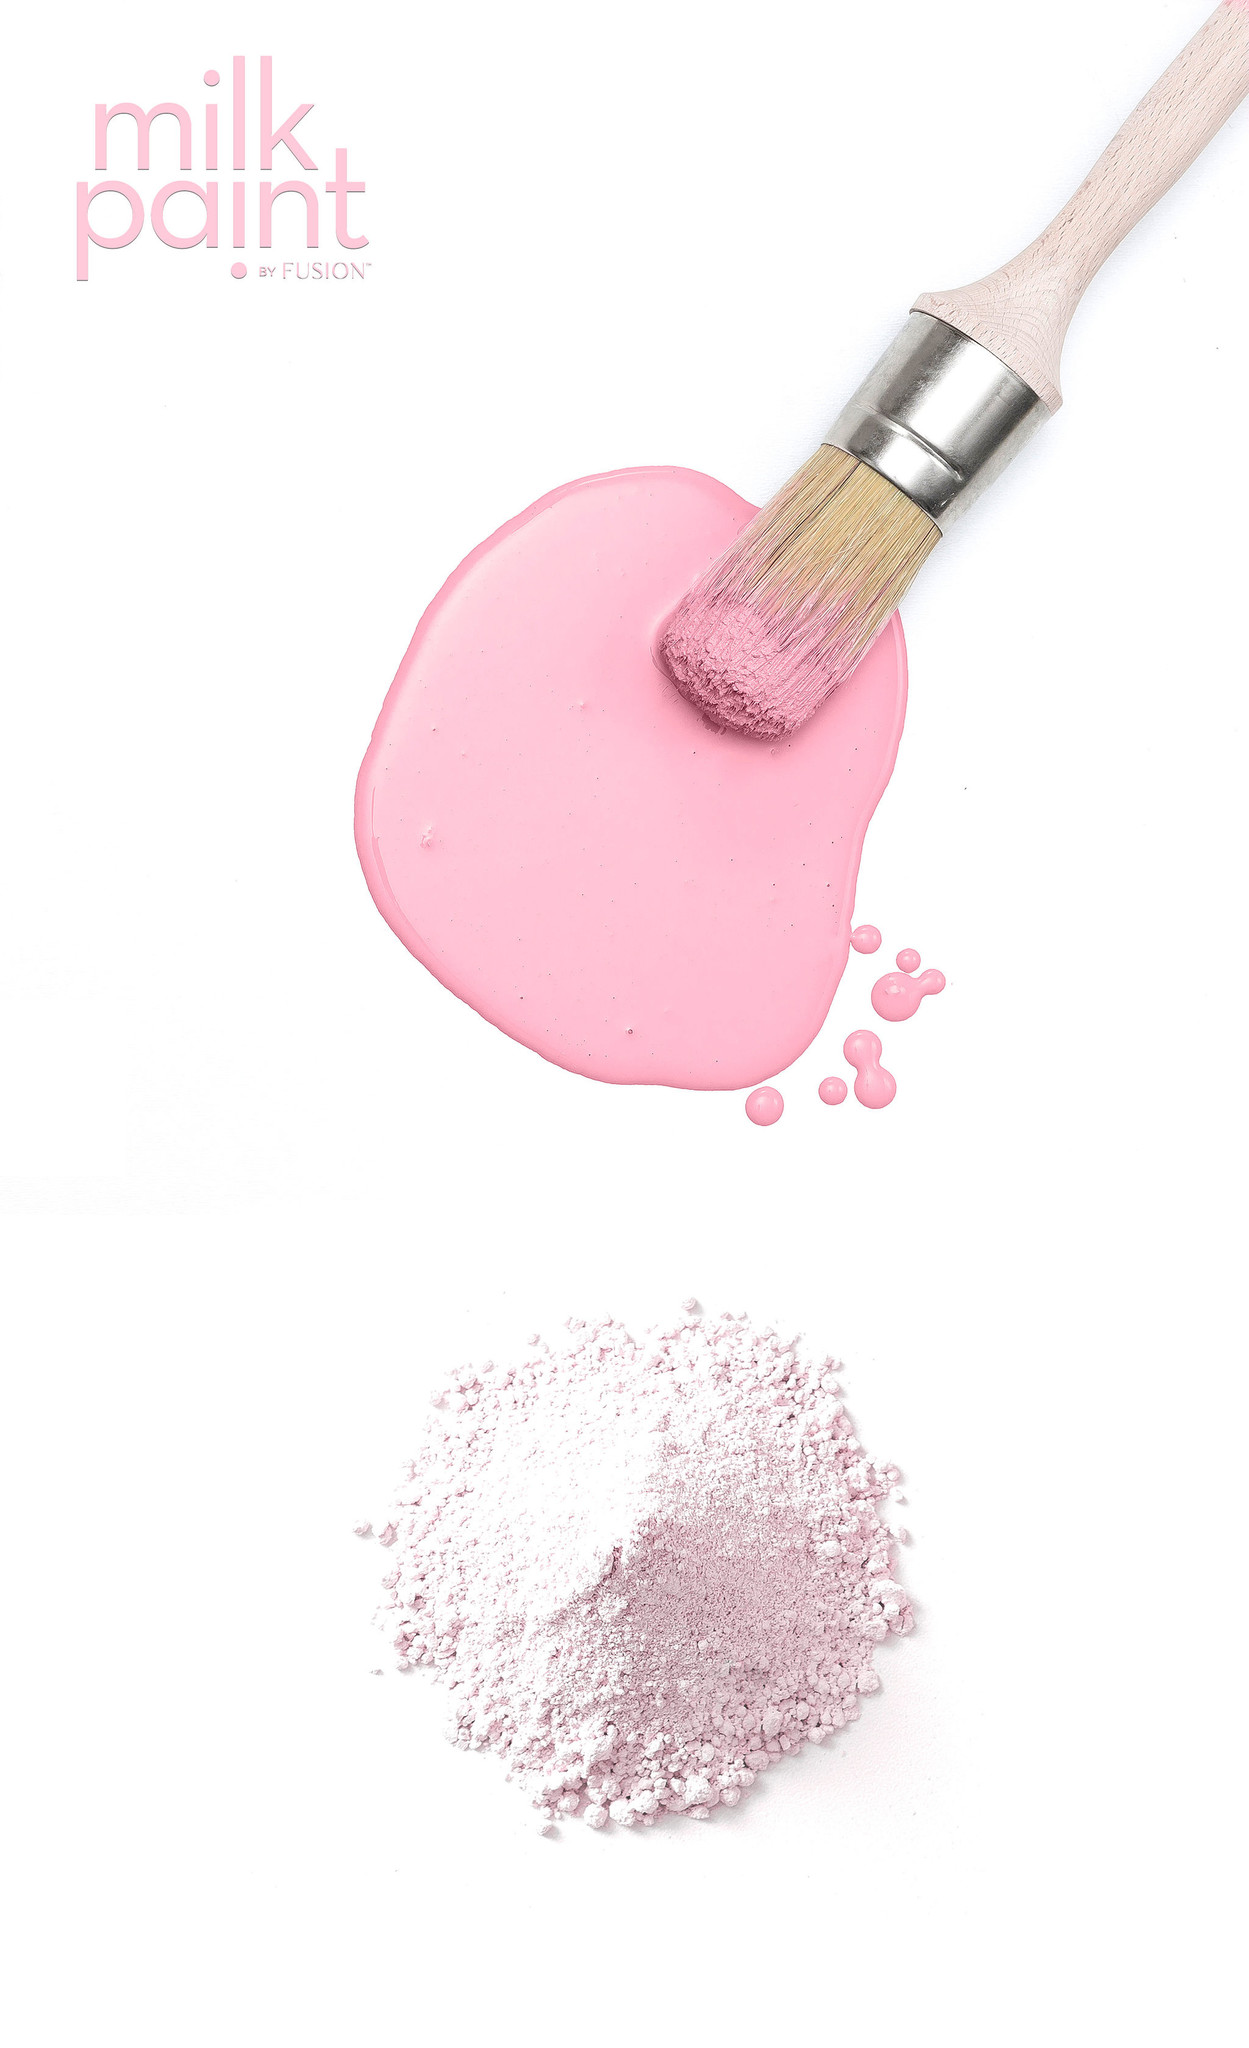 Fusion Mineral Paint Fusion - Milk Paint - Palm Springs Pink - 330gr